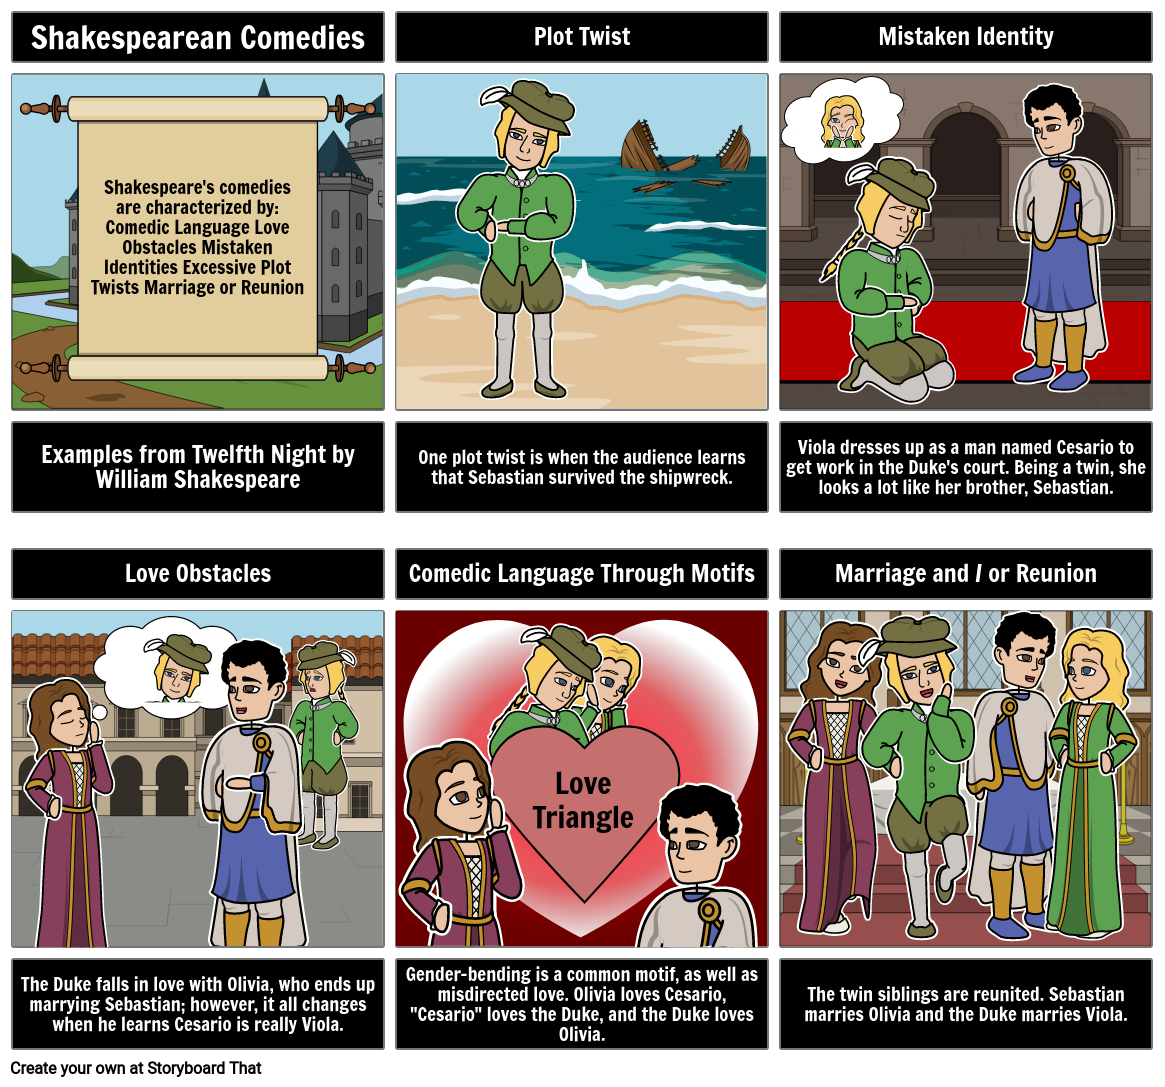 Elements of Shakespeare Comedies - Twelfth Night